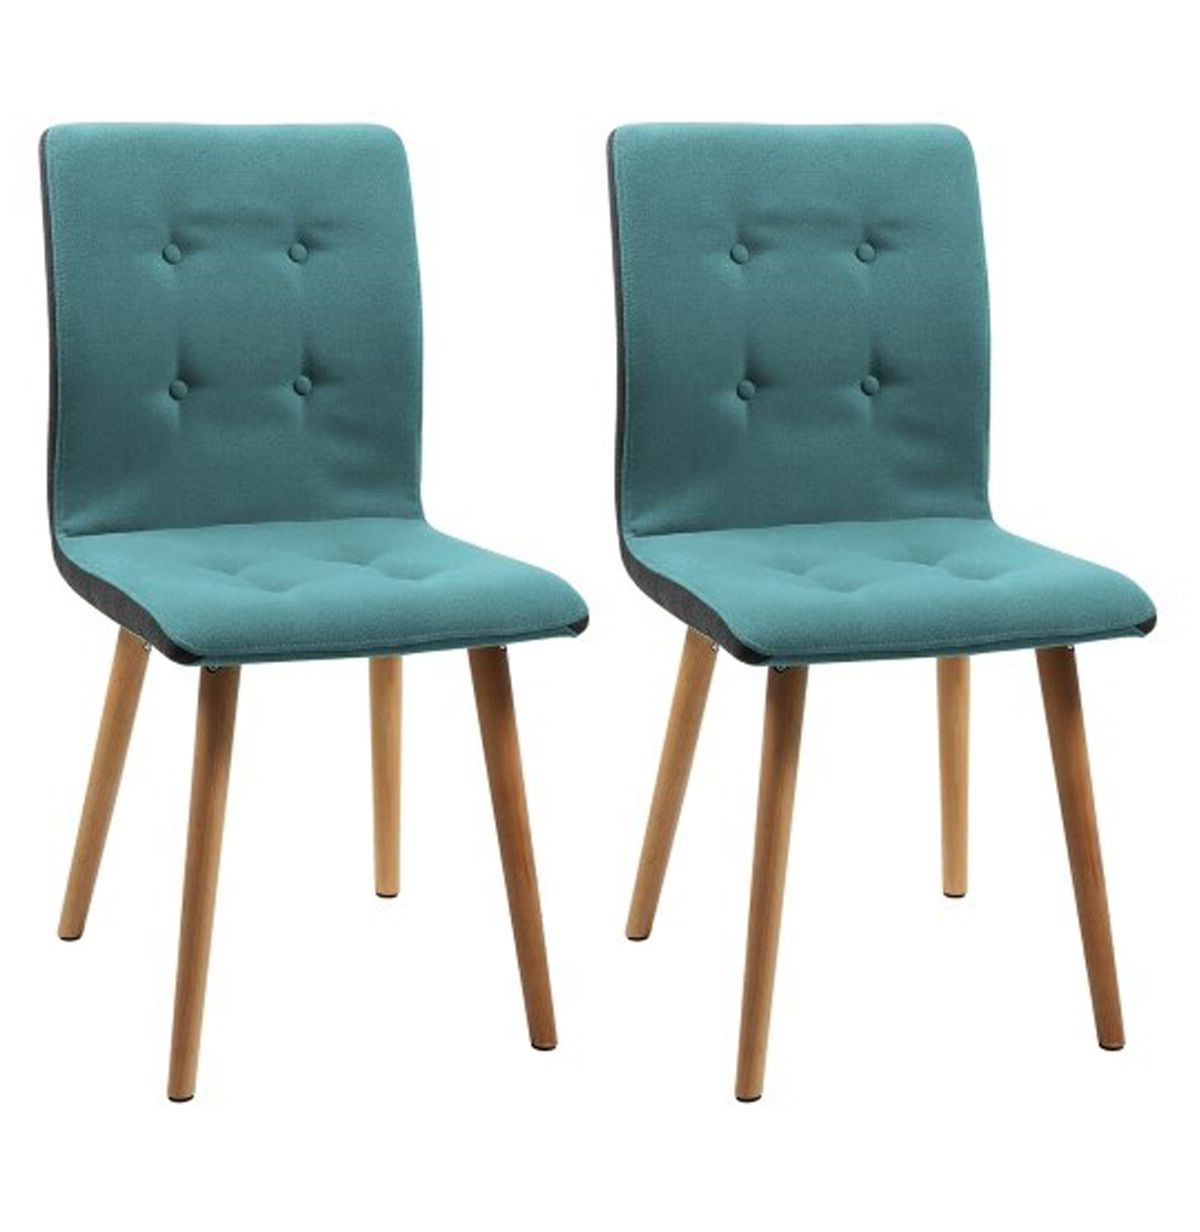 Frida 3 Piece Dining Table Sets Within Most Recent Frida Dining Chairs Teal Coloured Fabric (Pair) (View 11 of 20)